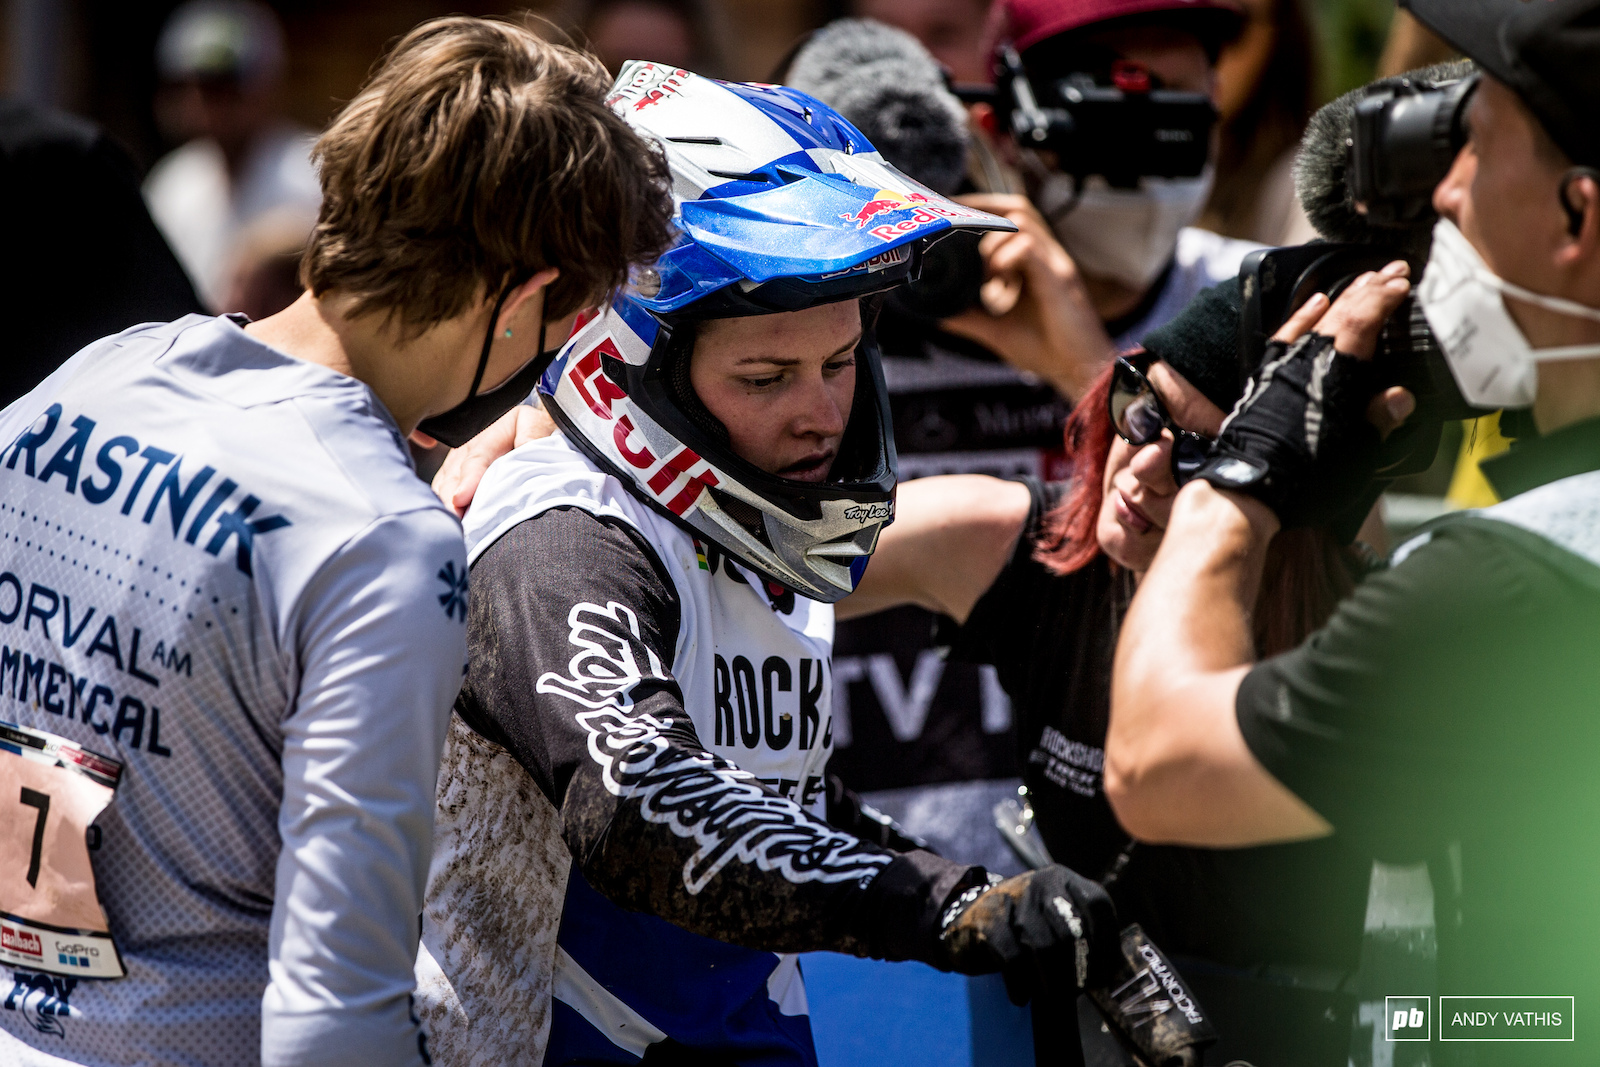 Speechless at the finish Vali s misfortune with her home track continues.